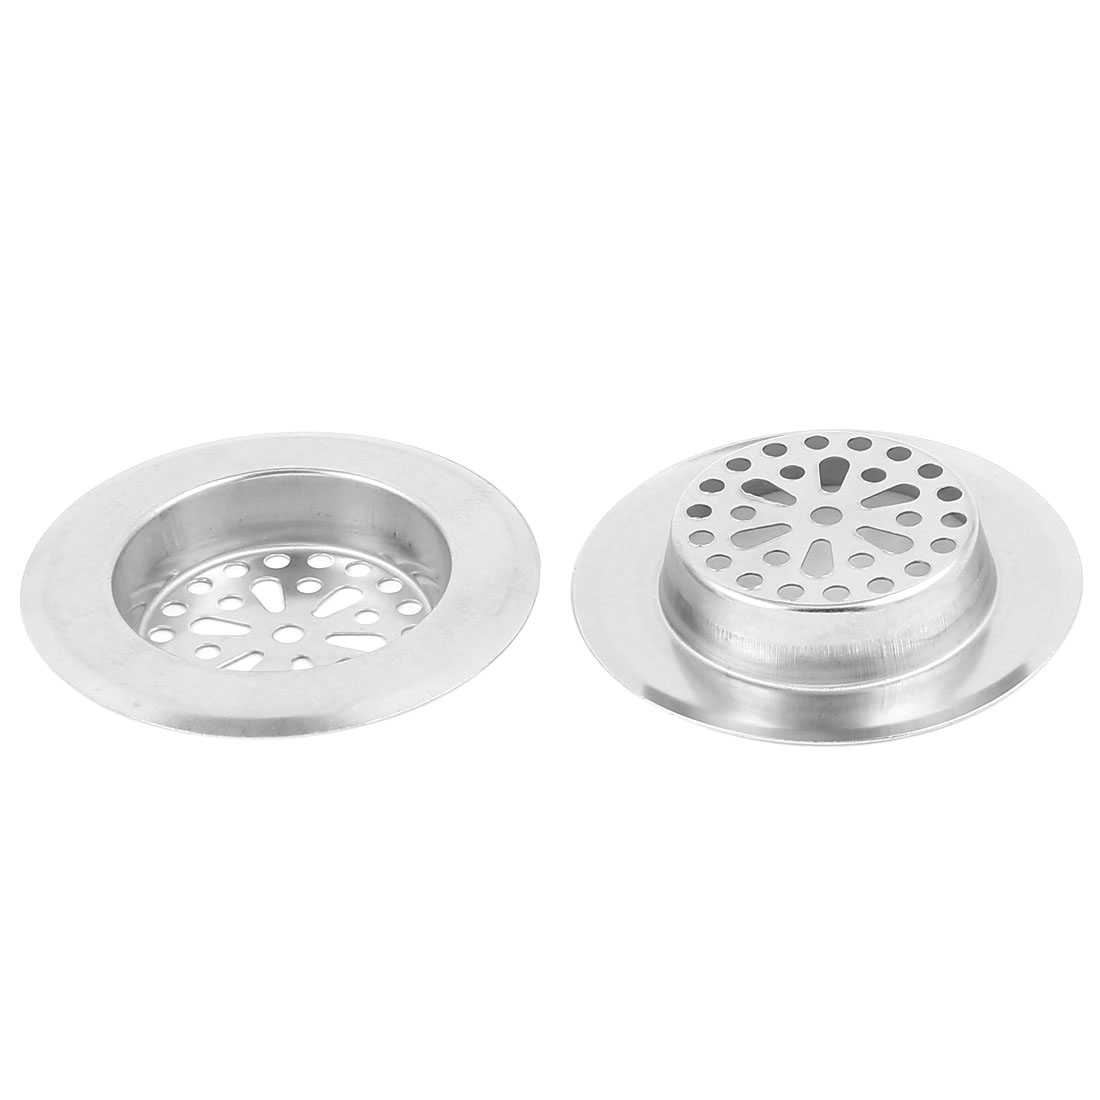 Bathroom Stainless Steel Sink Strainer Floor Drain Filter Stopper 3' Top Dia 2 Pcs